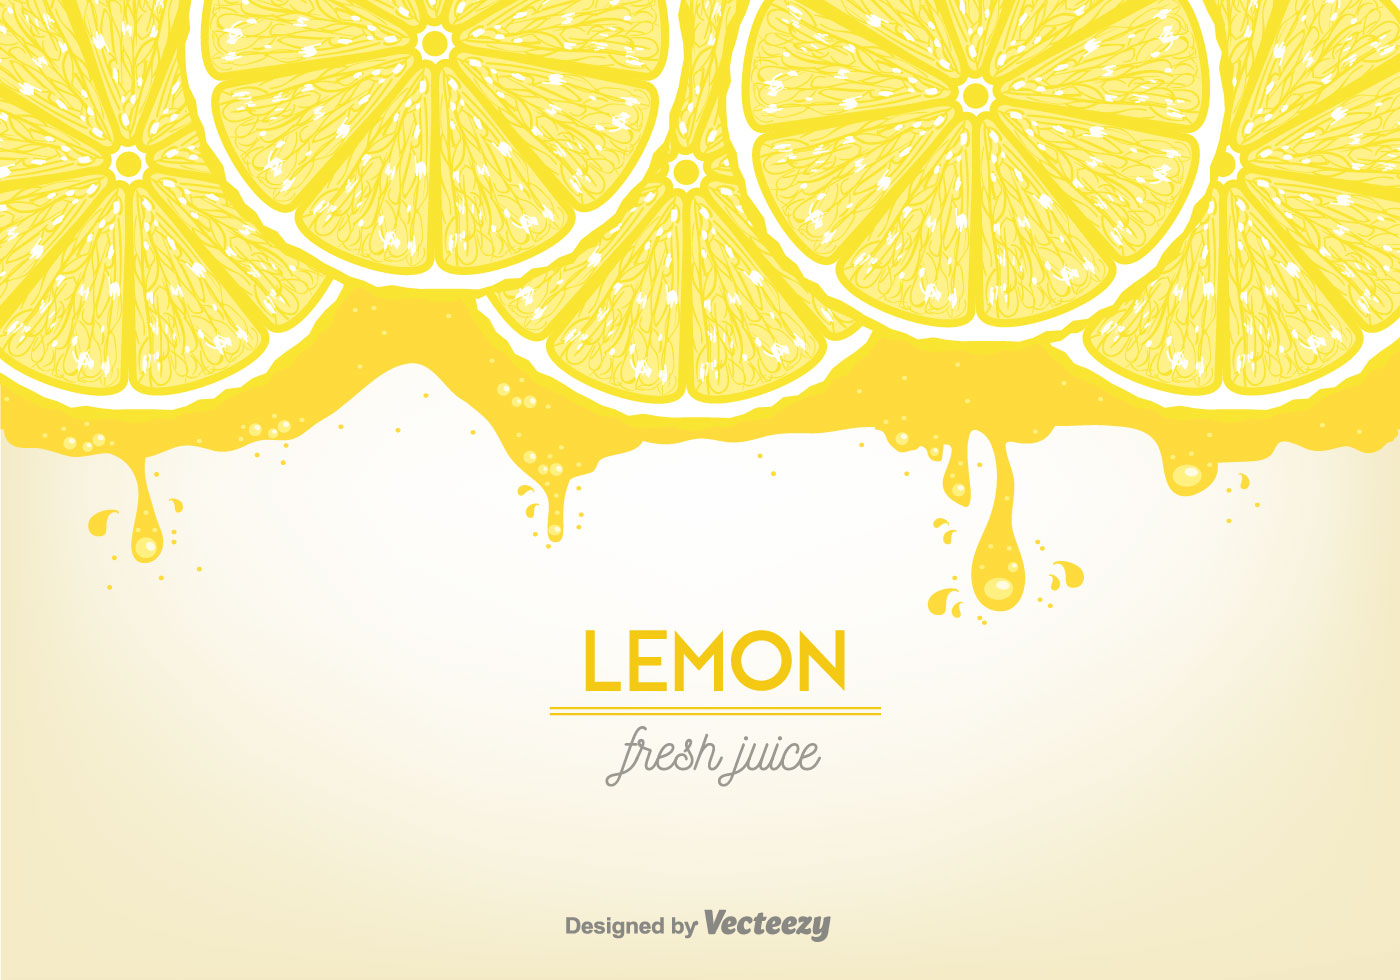 Lemon Juice Background Vector - Download Free Vector Art, Stock ...